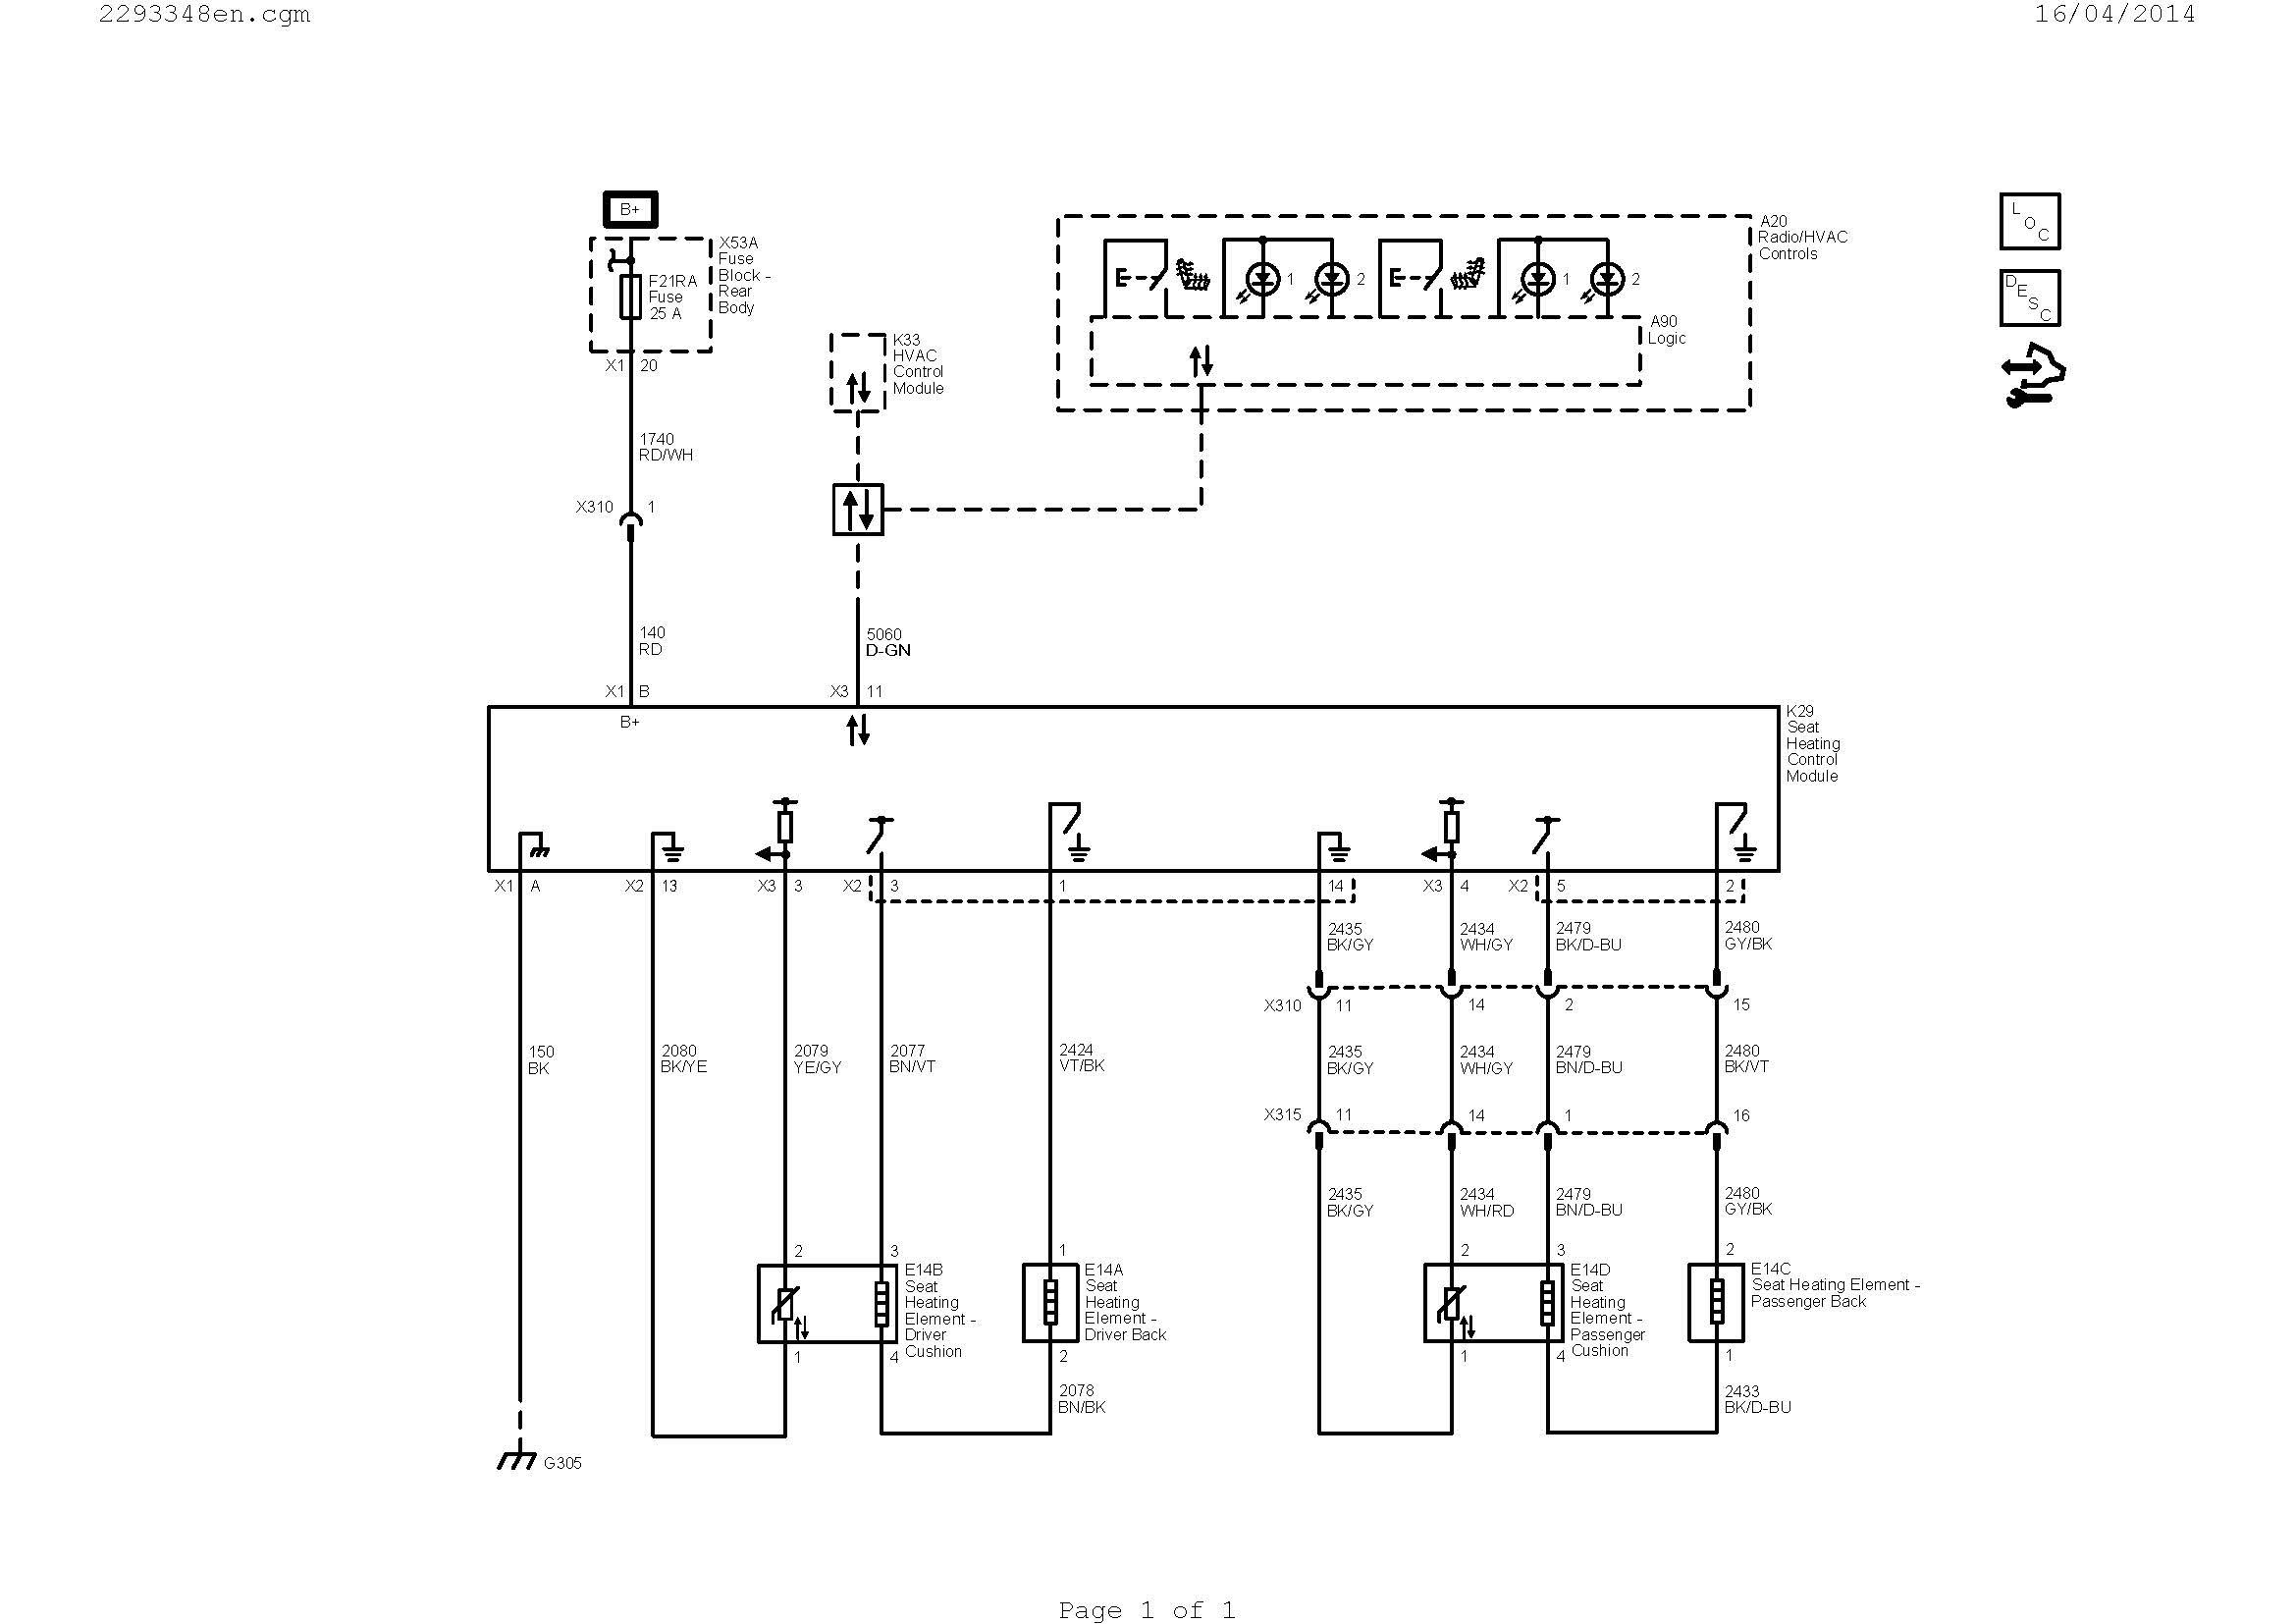 central boiler thermostat wiring diagram Download-central boiler thermostat wiring diagram Download Wiring Diagrams For Central Heating Refrence Hvac Diagram Best 10-d